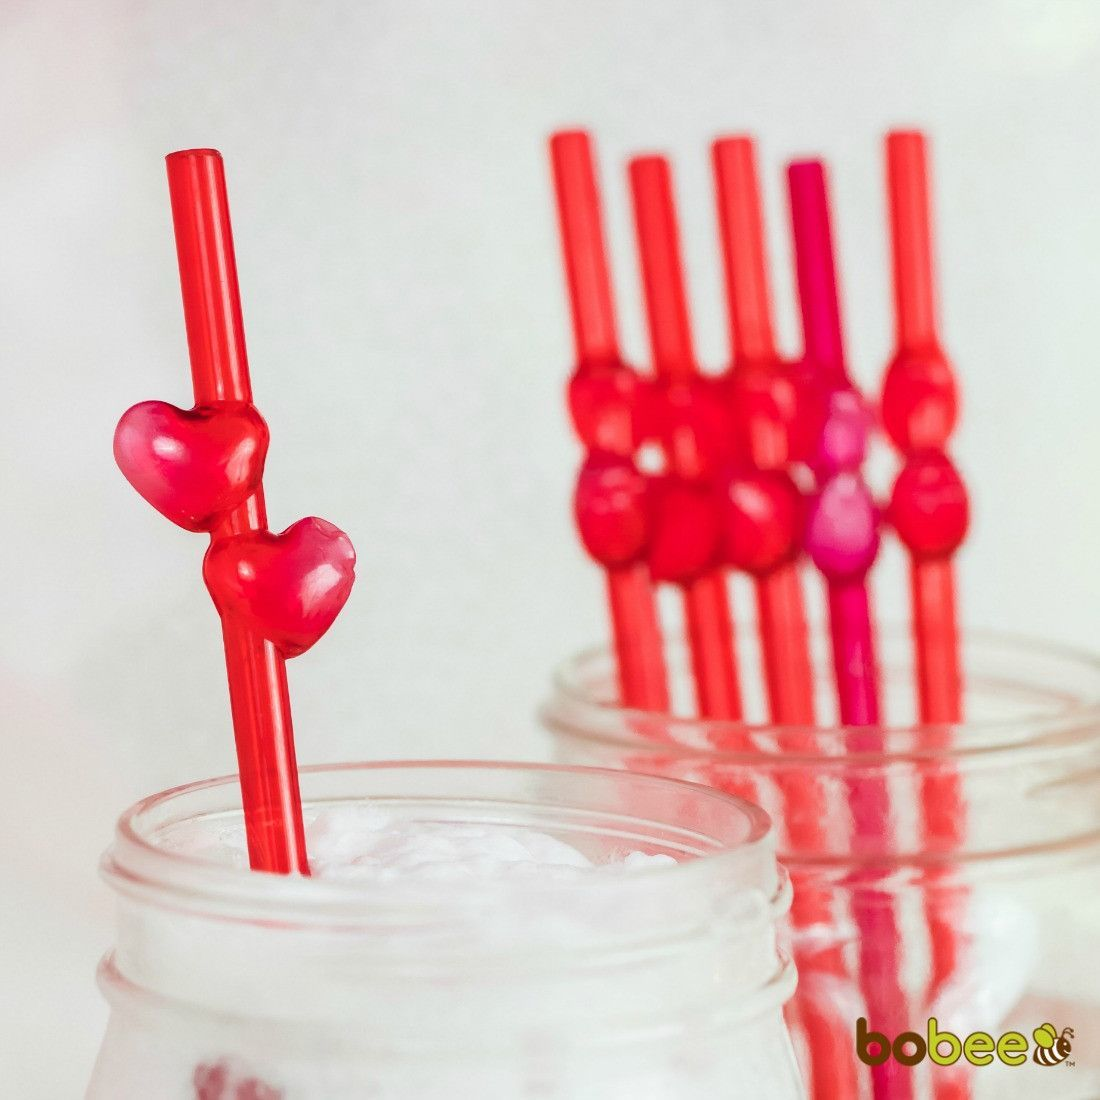 Red Heart Straws 6 count